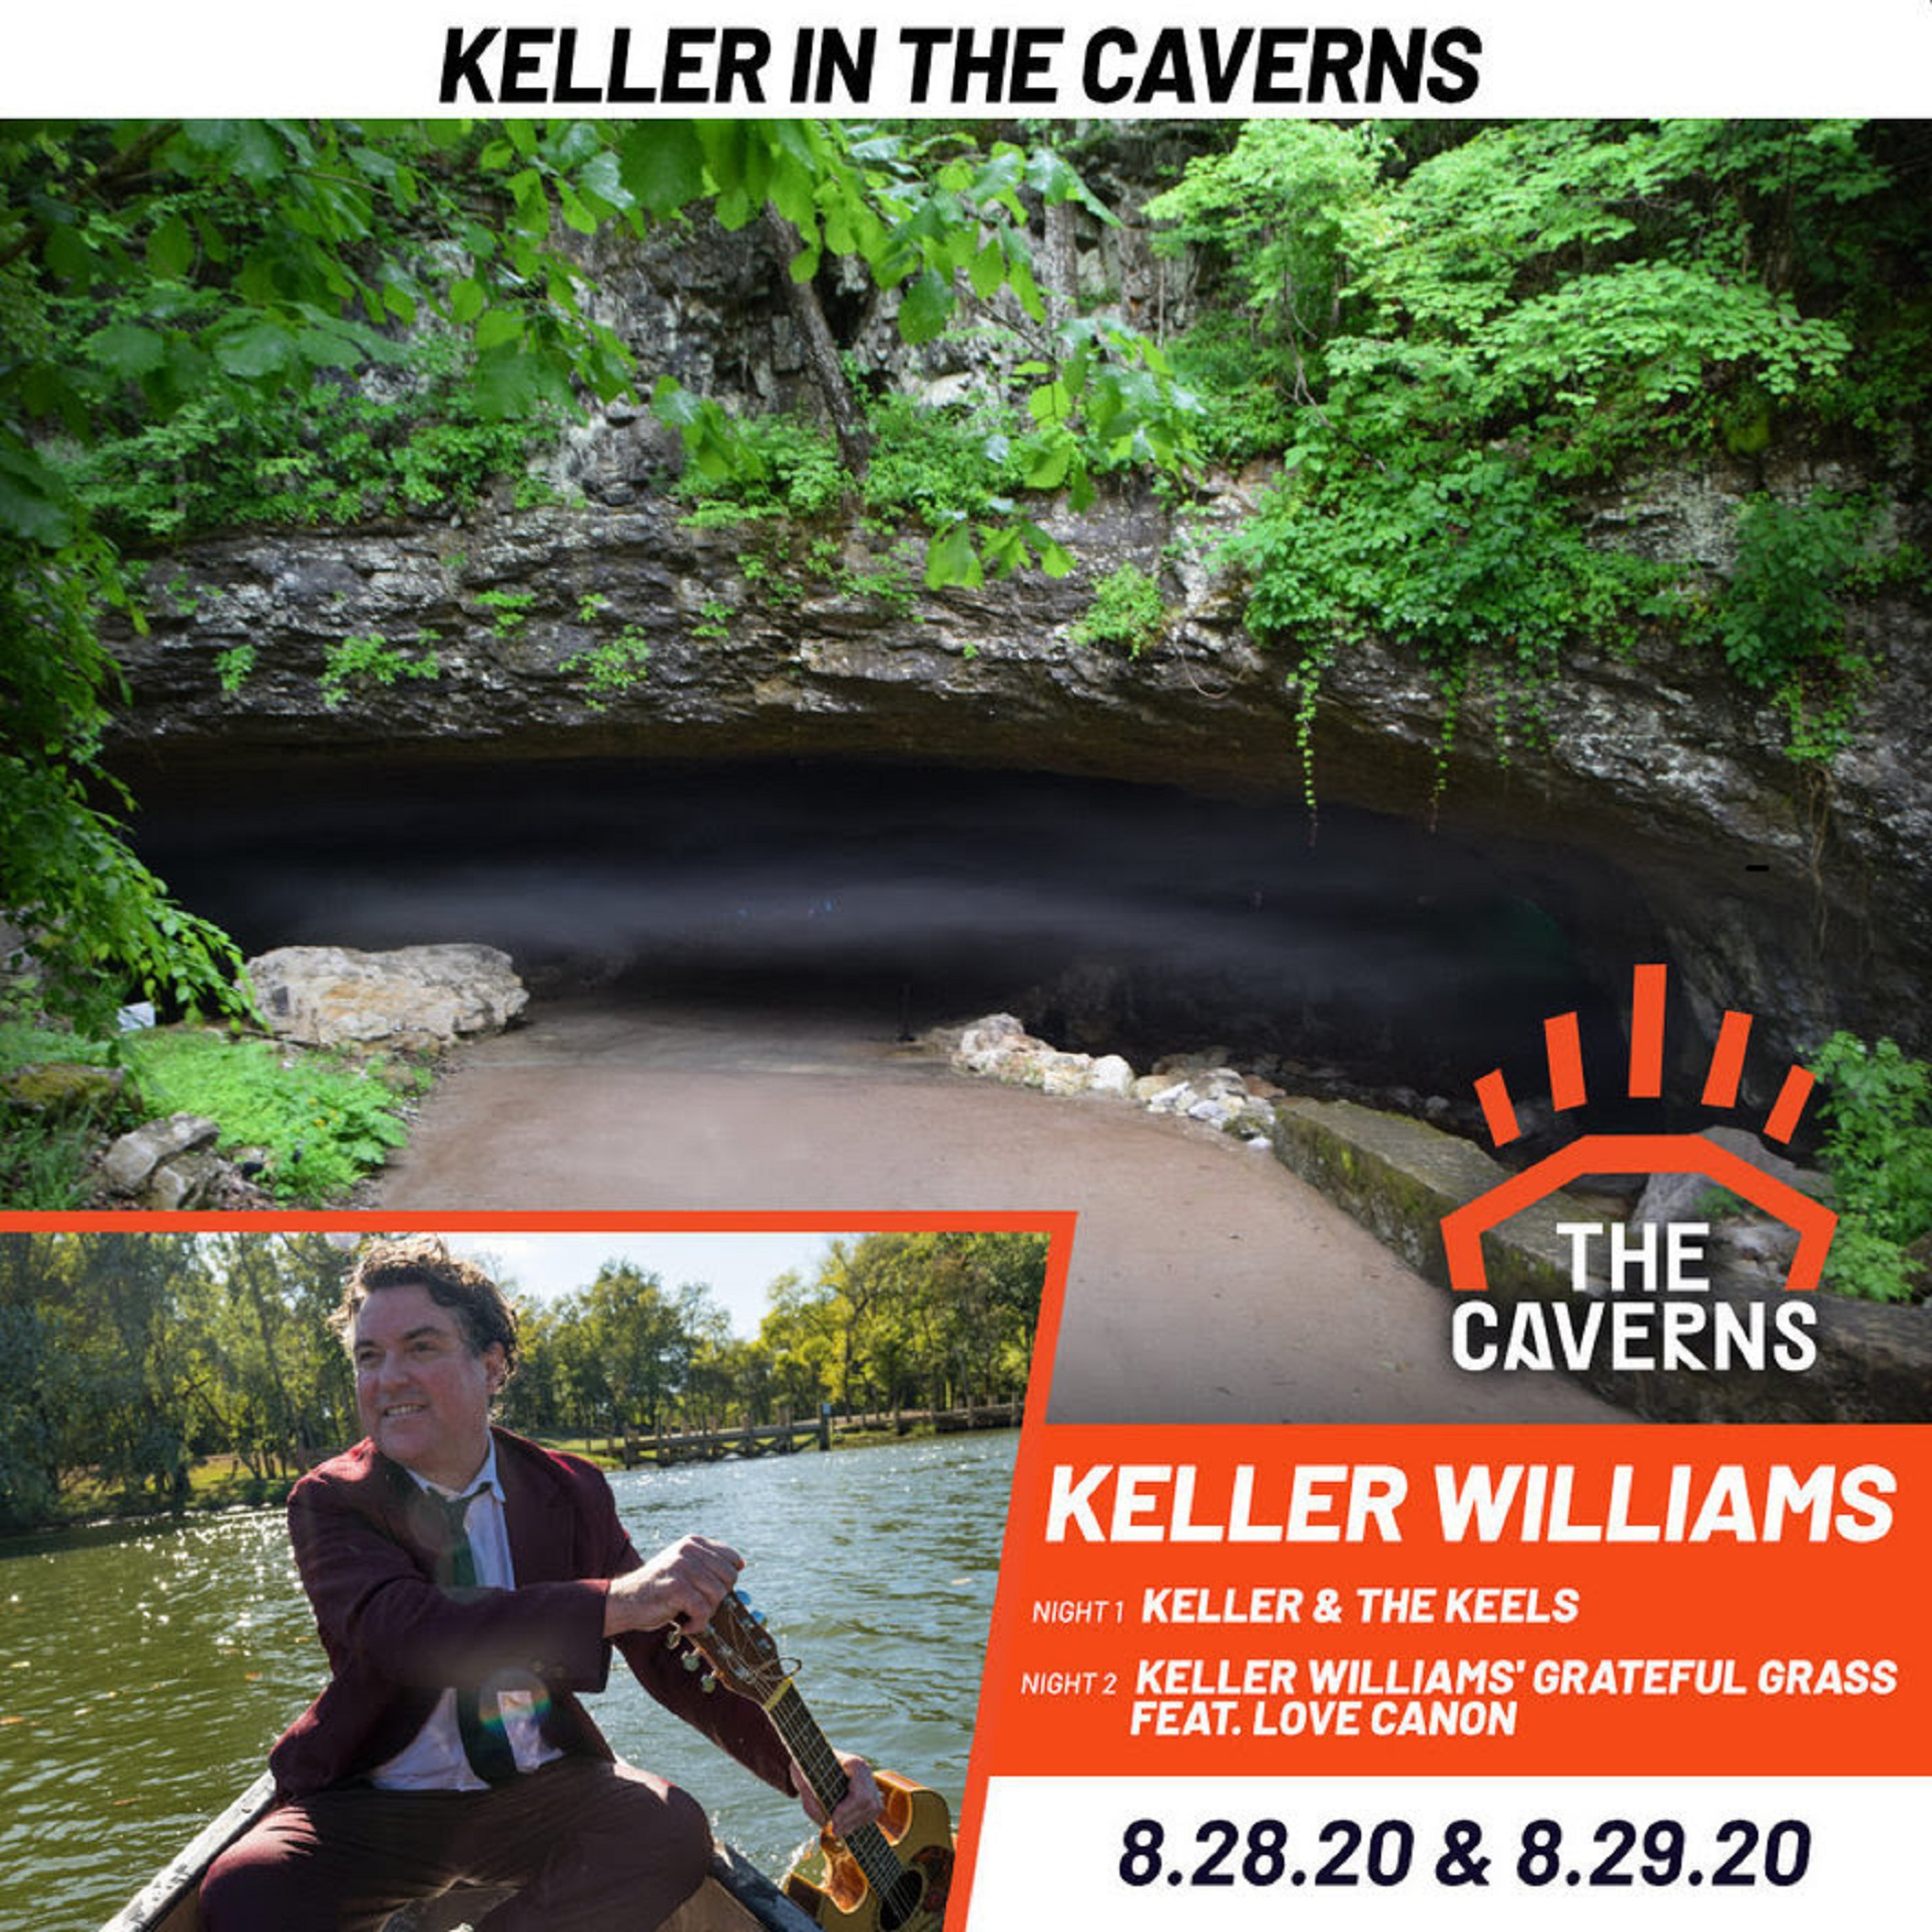 Keller Williams Announces Keller In The Caverns Experience Aug. 28 & 29